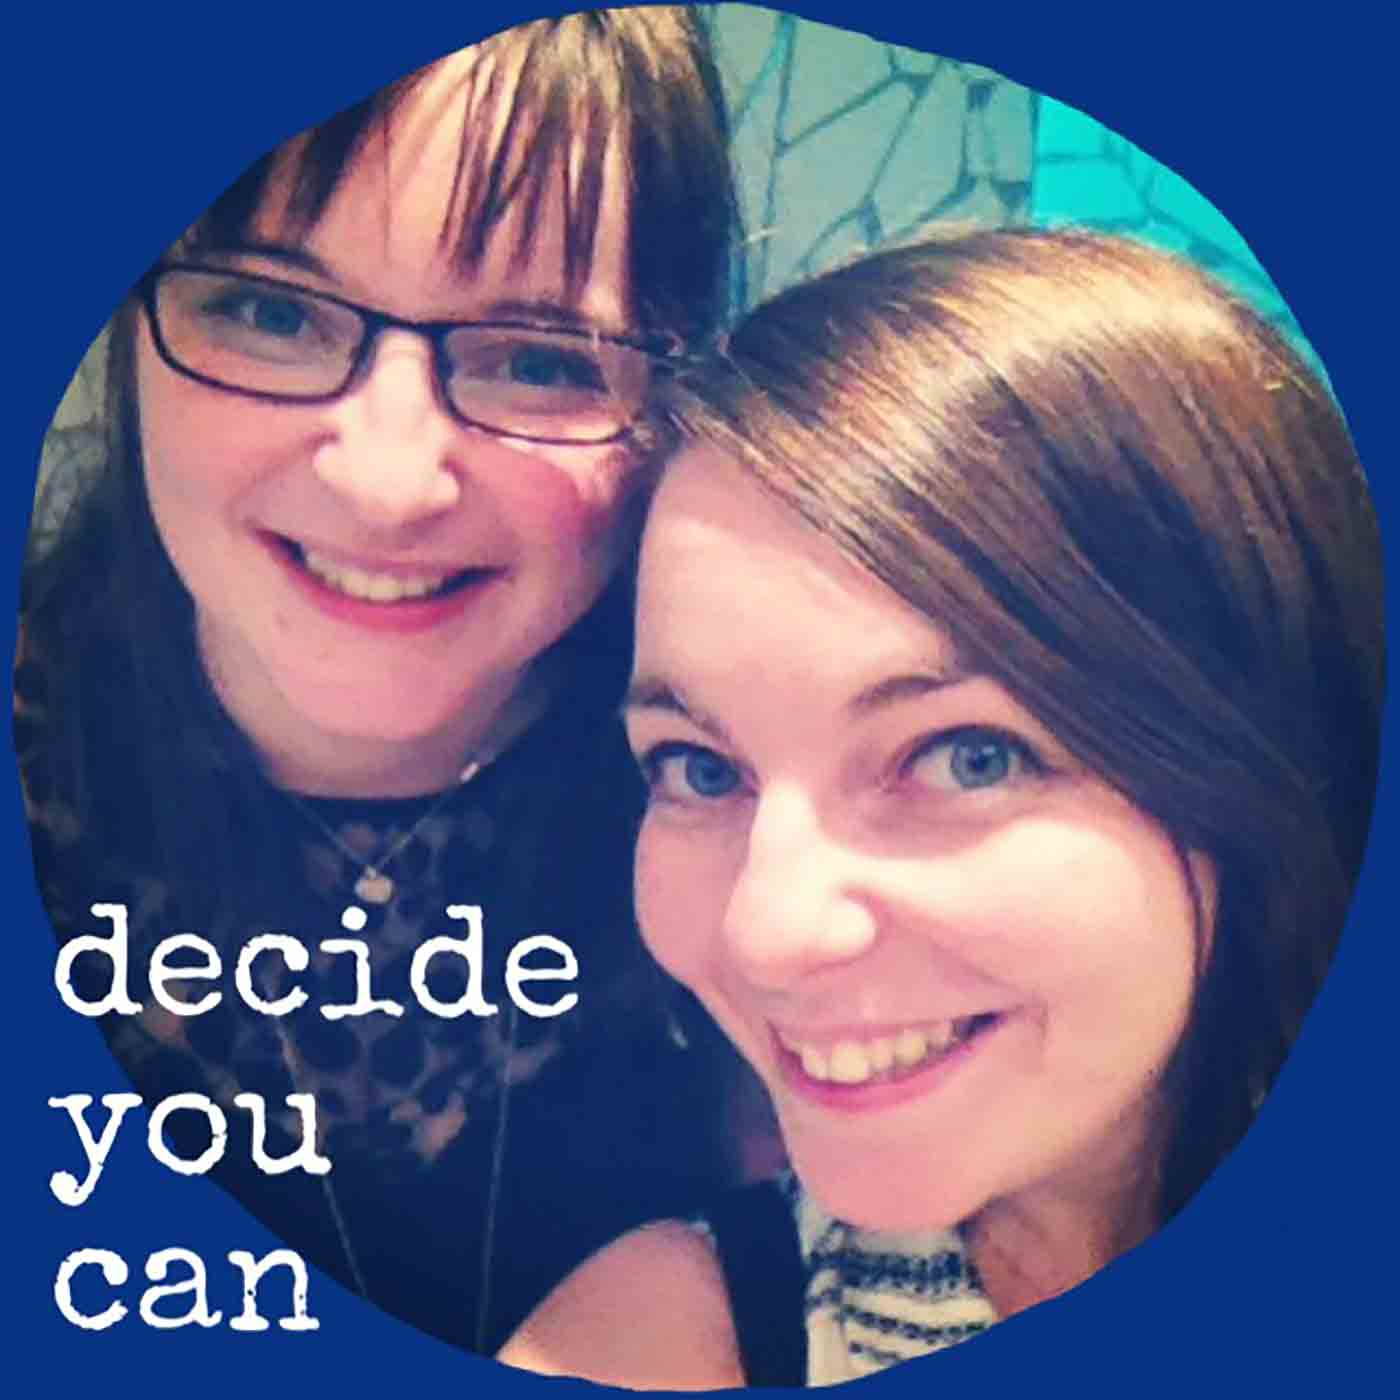 decide you can